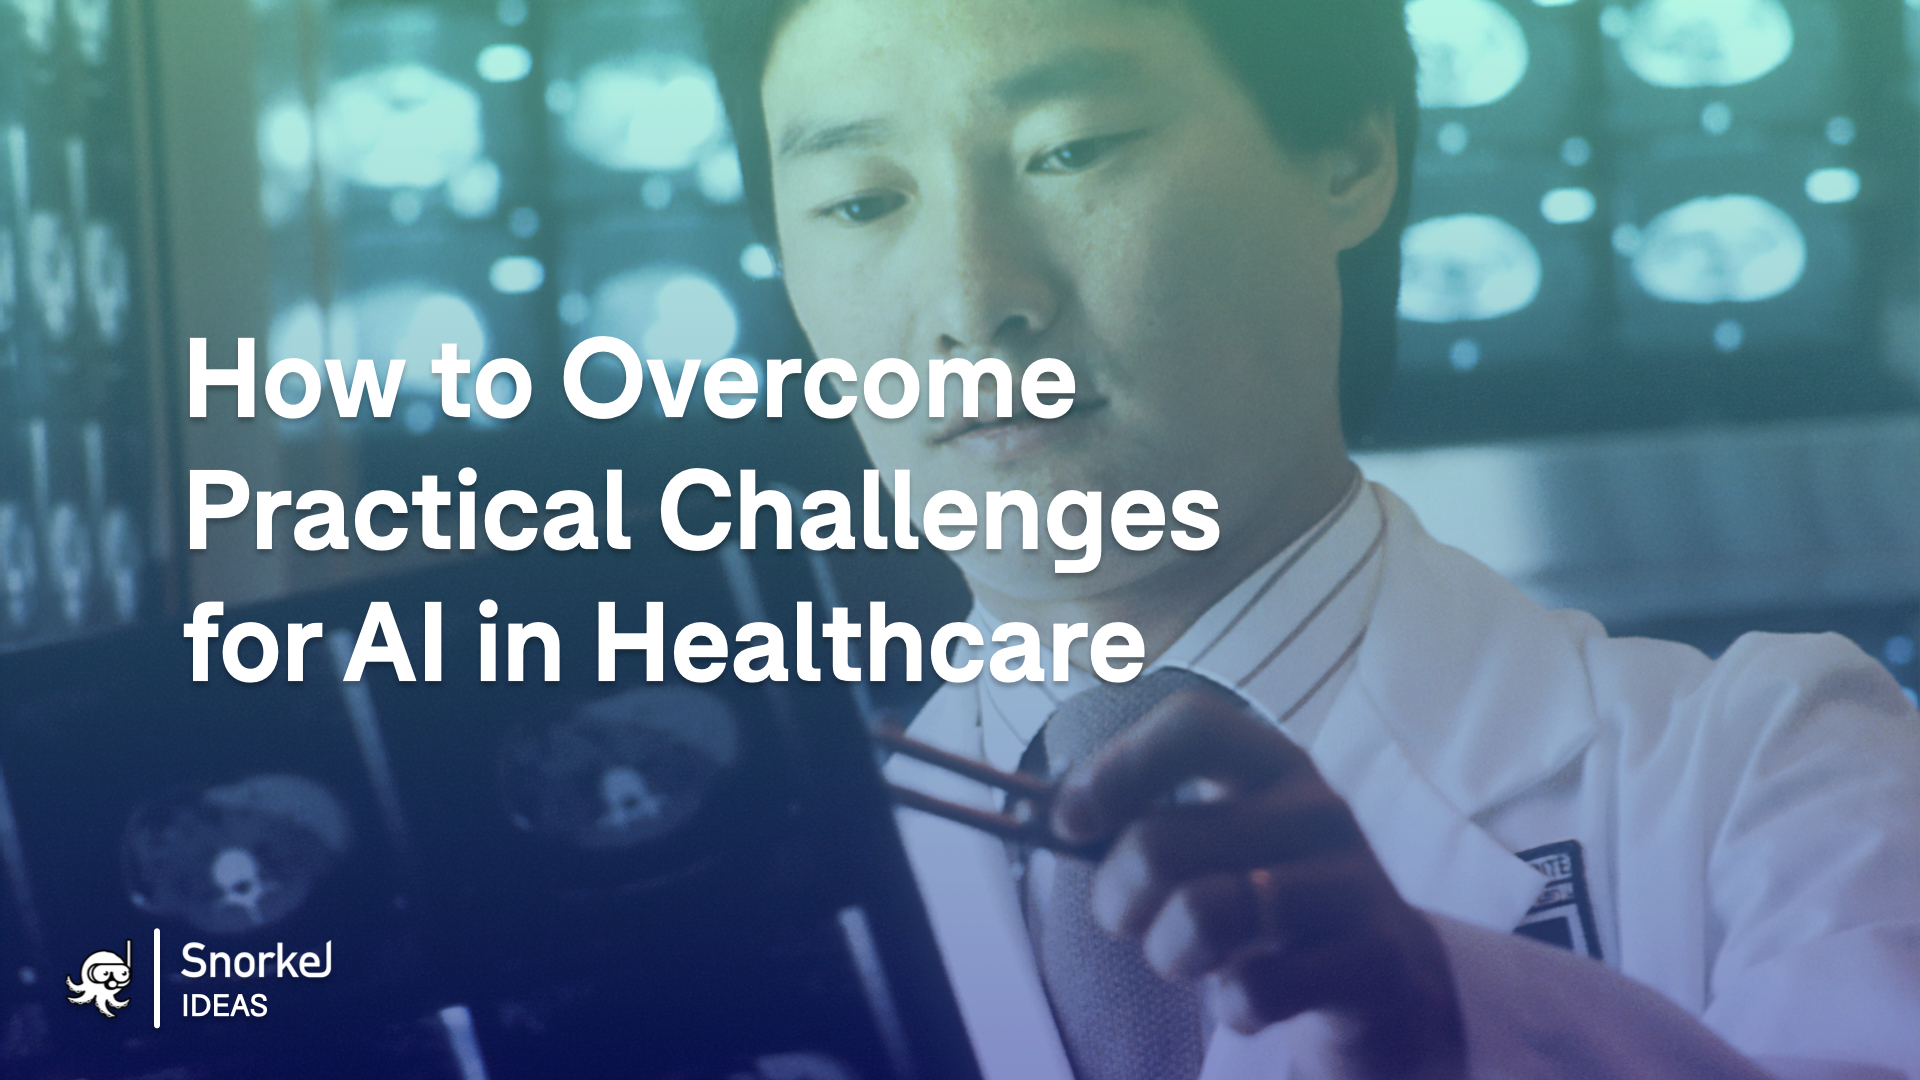 How to Overcome Practical Challenges for AI in Healthcare